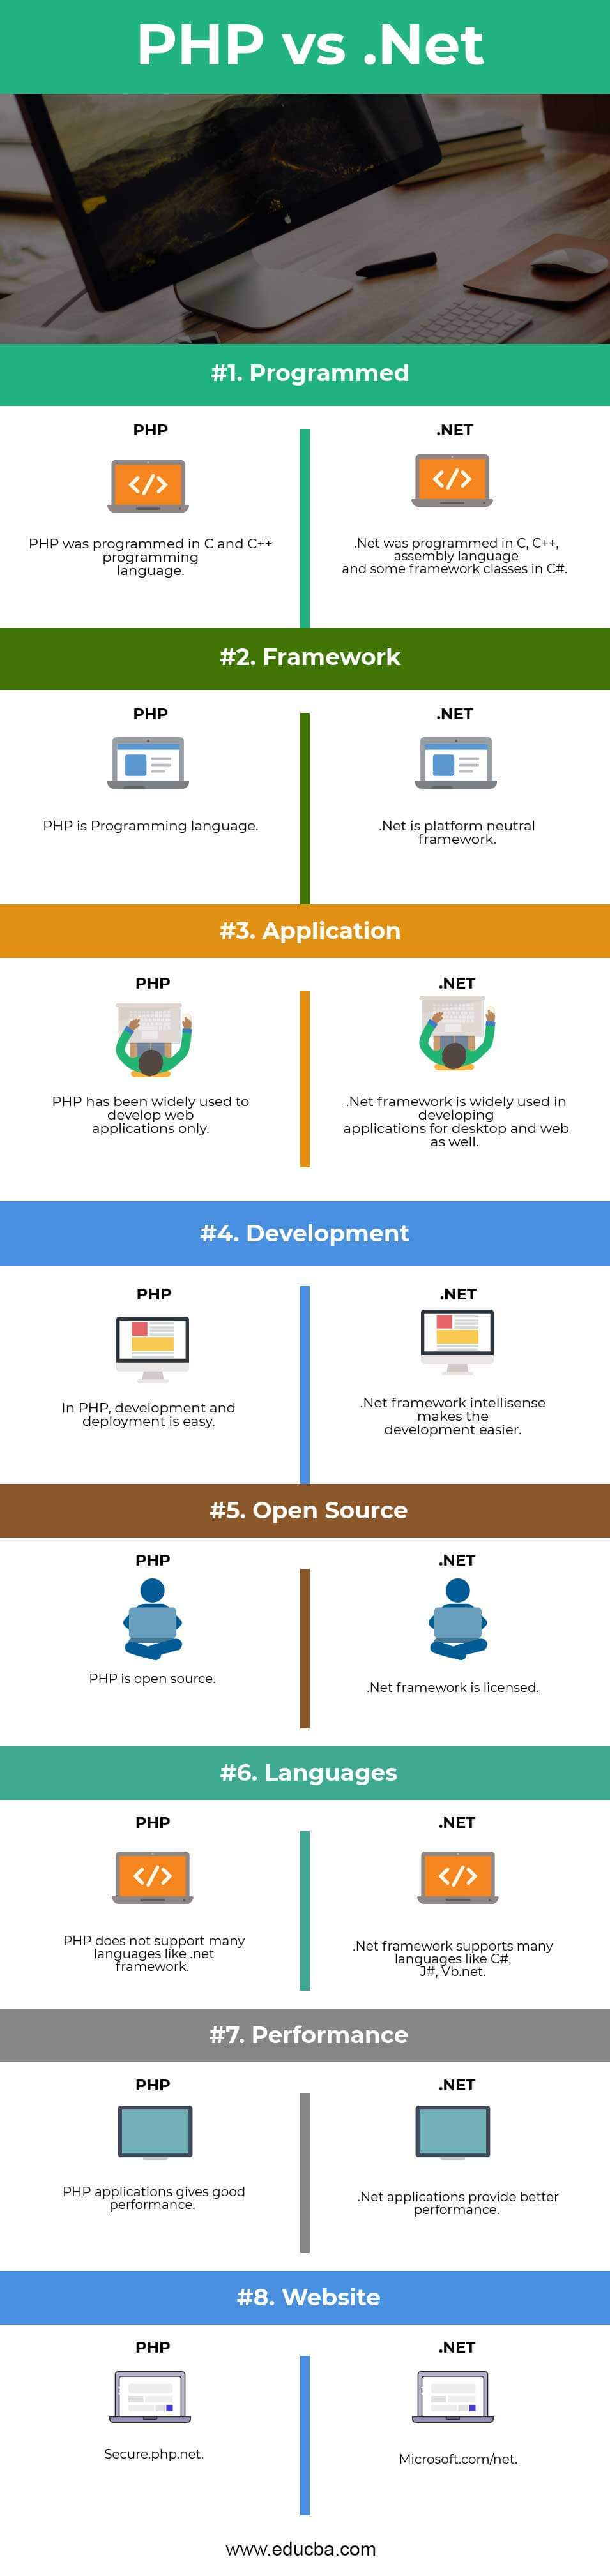 PHP vs Net - Learn The Top 8 Most Important Differences